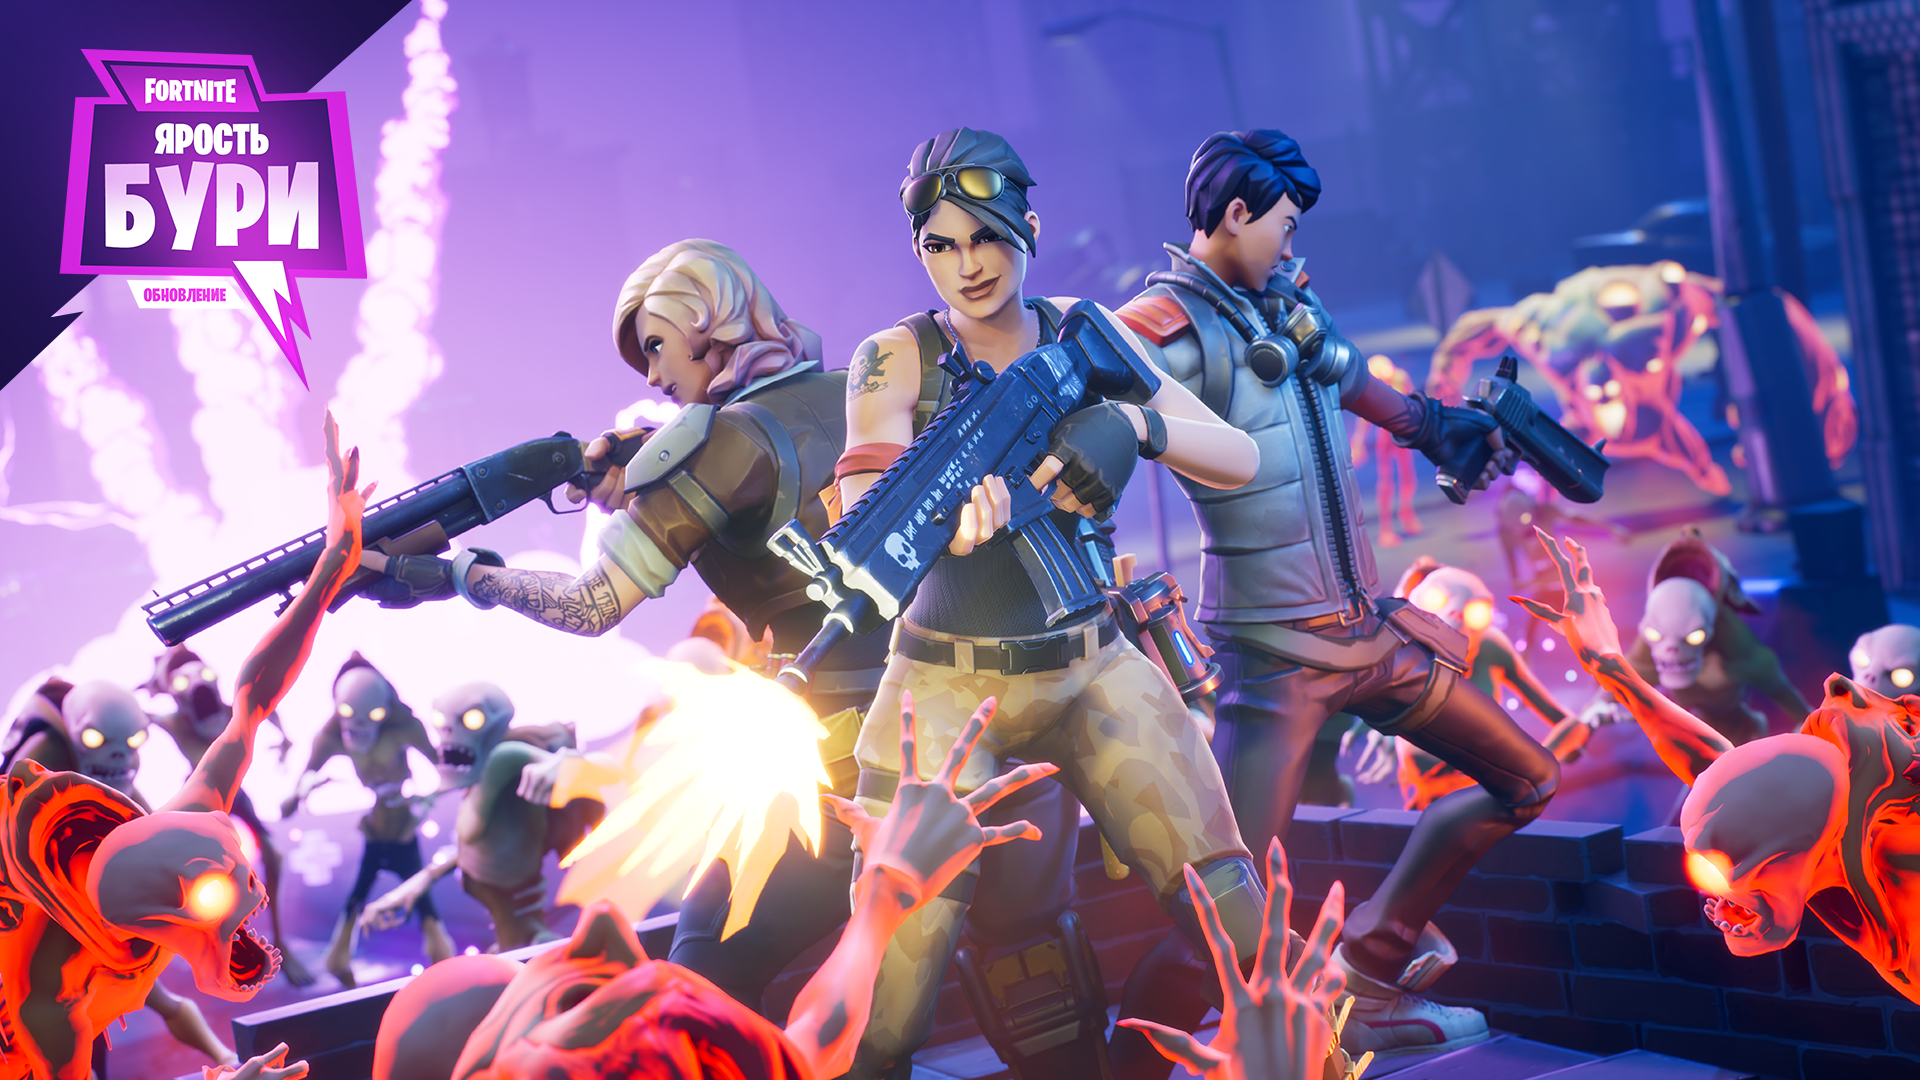 Fortnite%2Fblog%2Fsurvive-the-storm---release-notes%2FRUS_Storm-Zone-1920x1080-1427eca2a8e949352306d0b3dfbd02d60844d9aa